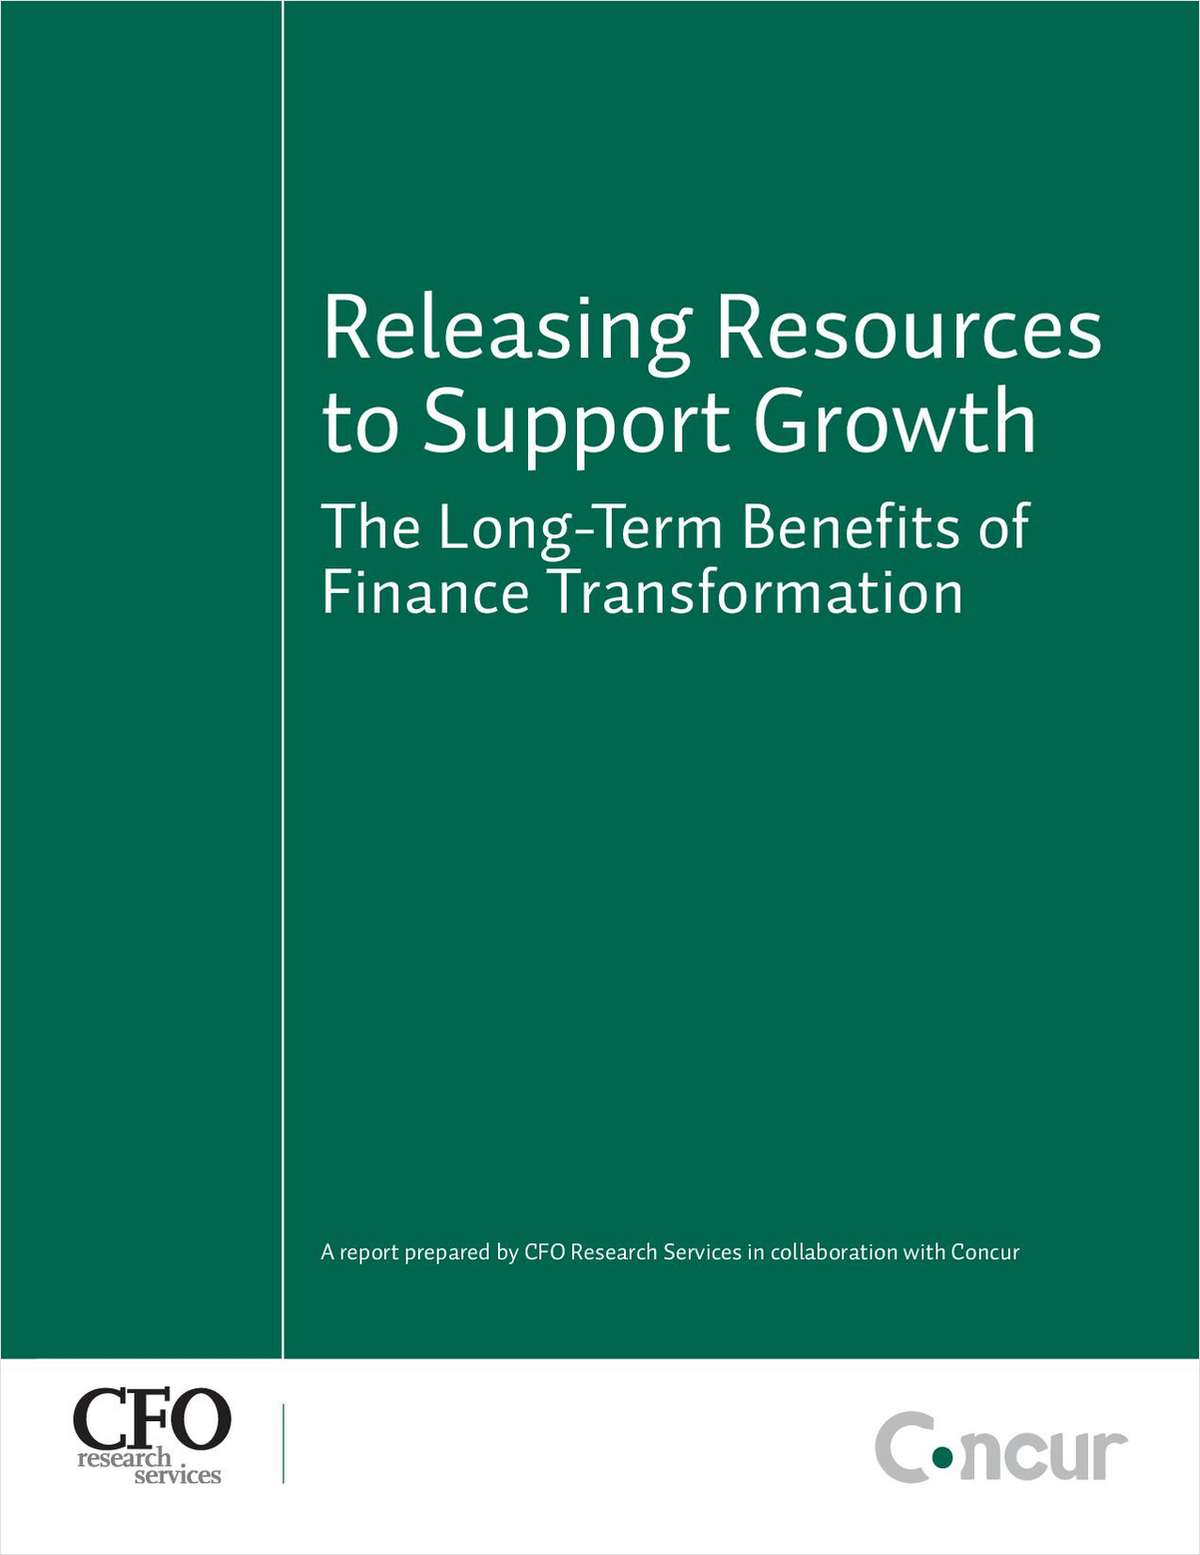 Releasing Resources to Support Growth - The Long-Term Benefits of Finance Transformation